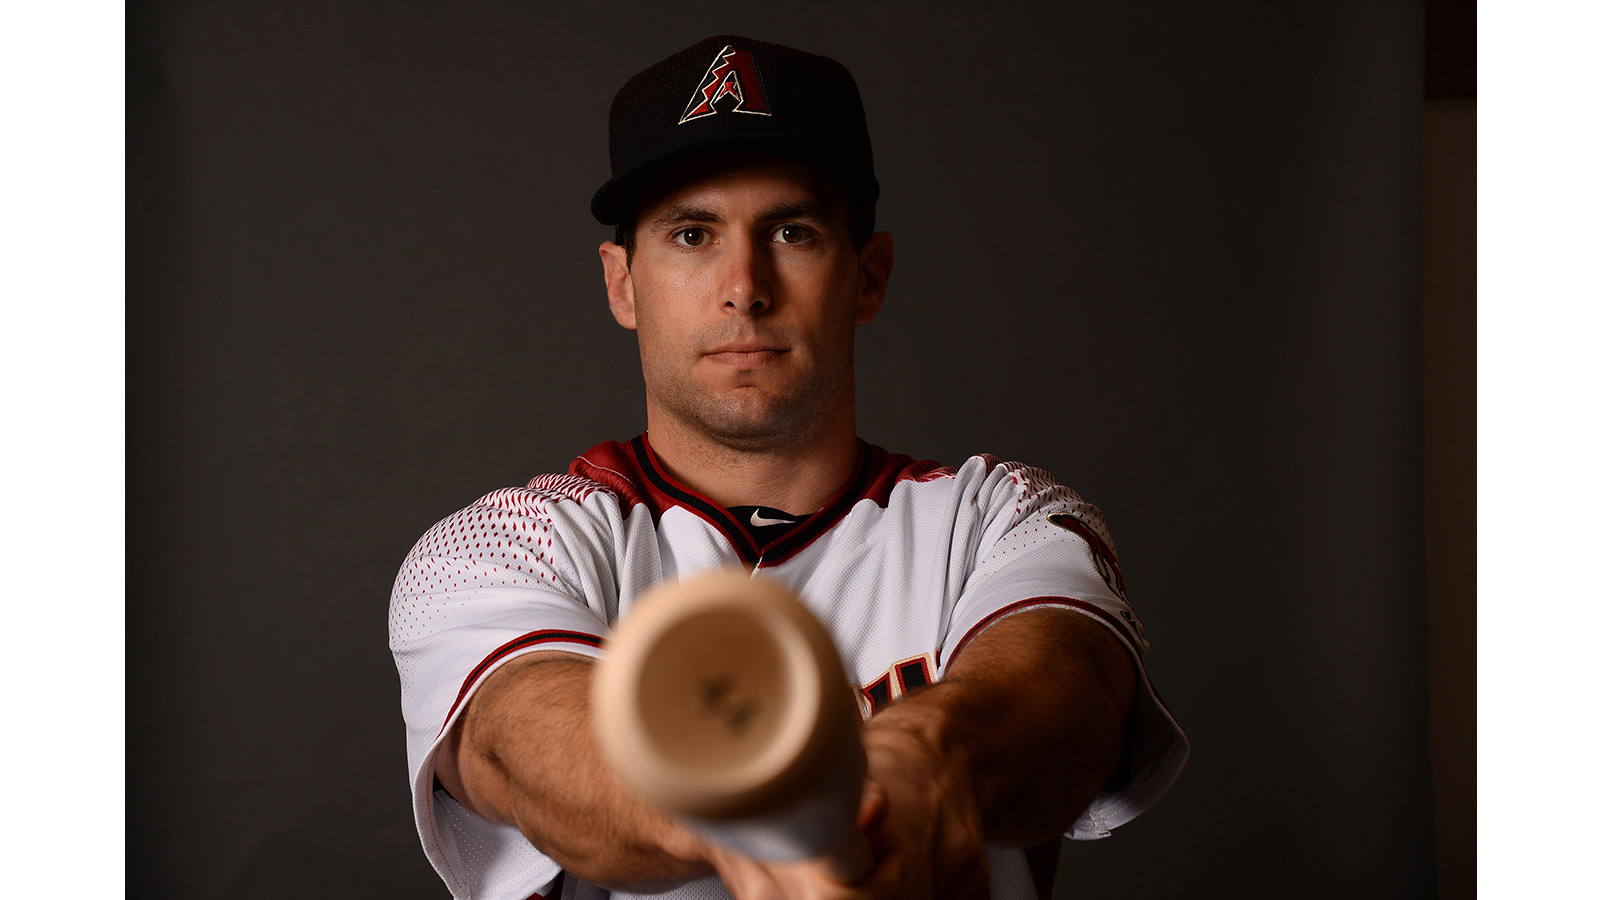 pi-mlb-dbacks-paul-goldschmidt-022417